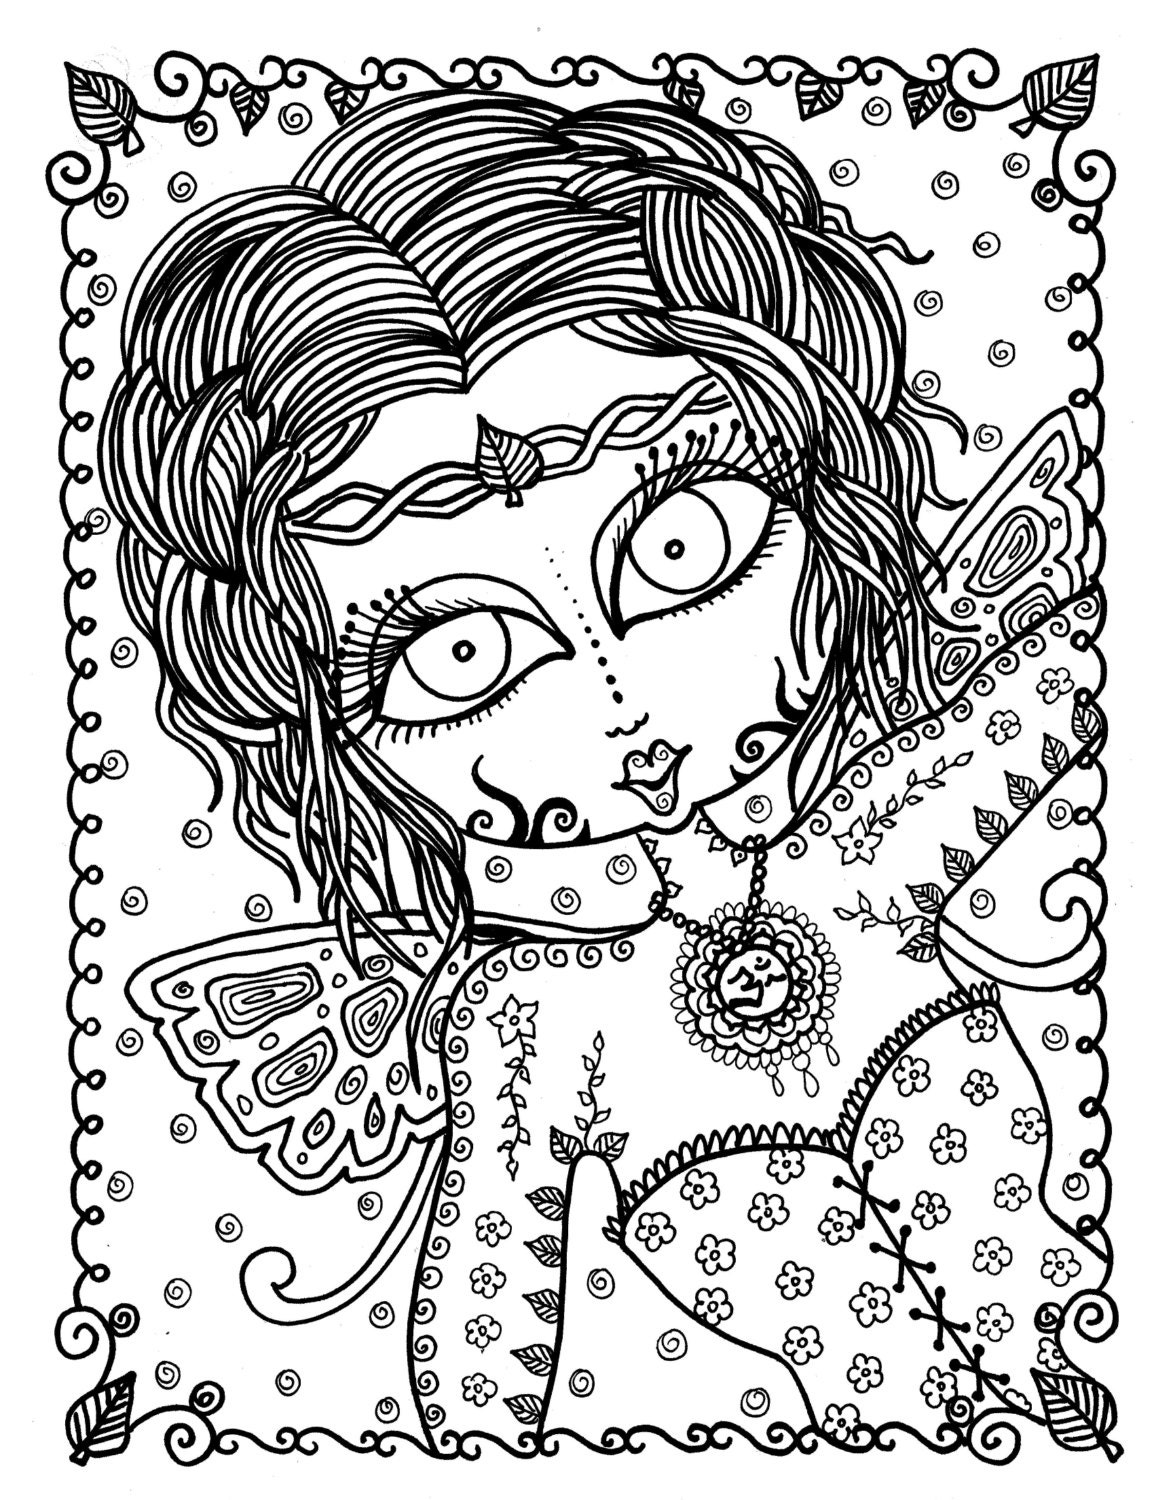 adult coloring pages download | Zen Fairy Adult coloring page Instant Download Fairies to